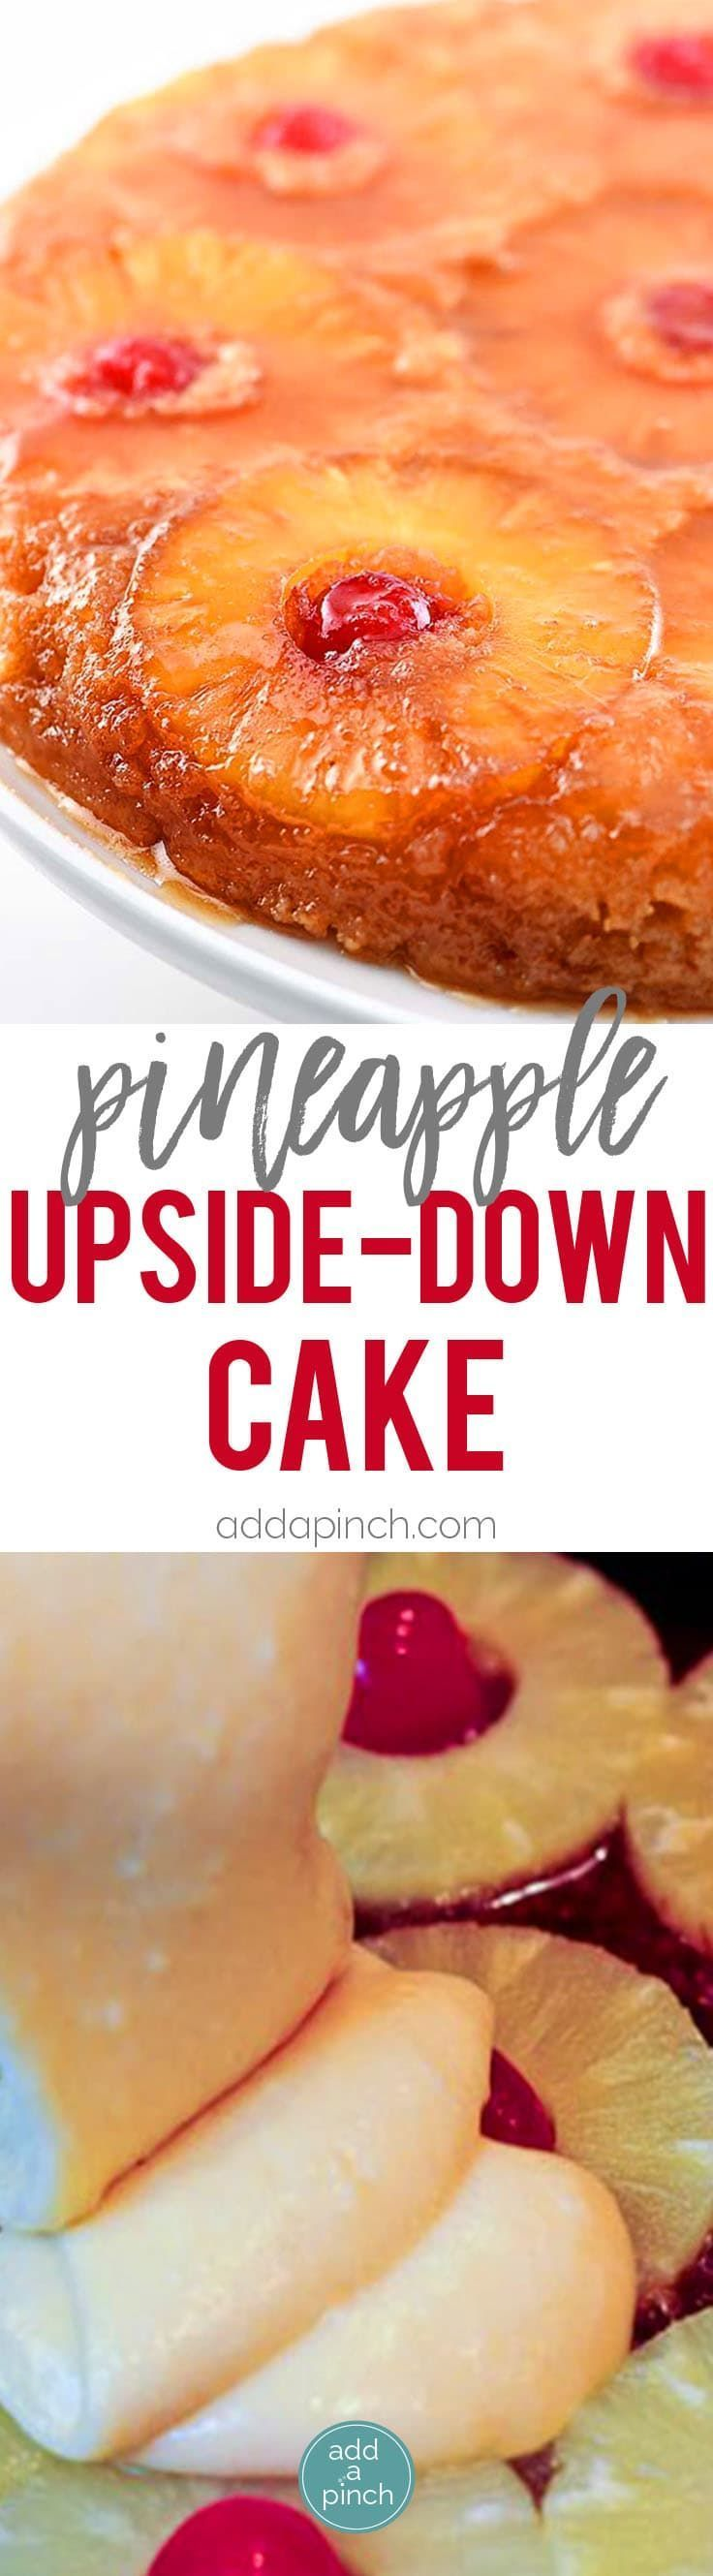 Pineapple Upside Down Cake Recipe: Pineapple Upside Down Cake makes a timeless dessert. Topped with a signature pineapple and cherry topping, this pineapple upside down cake is a southern classic. // addapinch.com #pineappleupsidedowncake #cake #southern